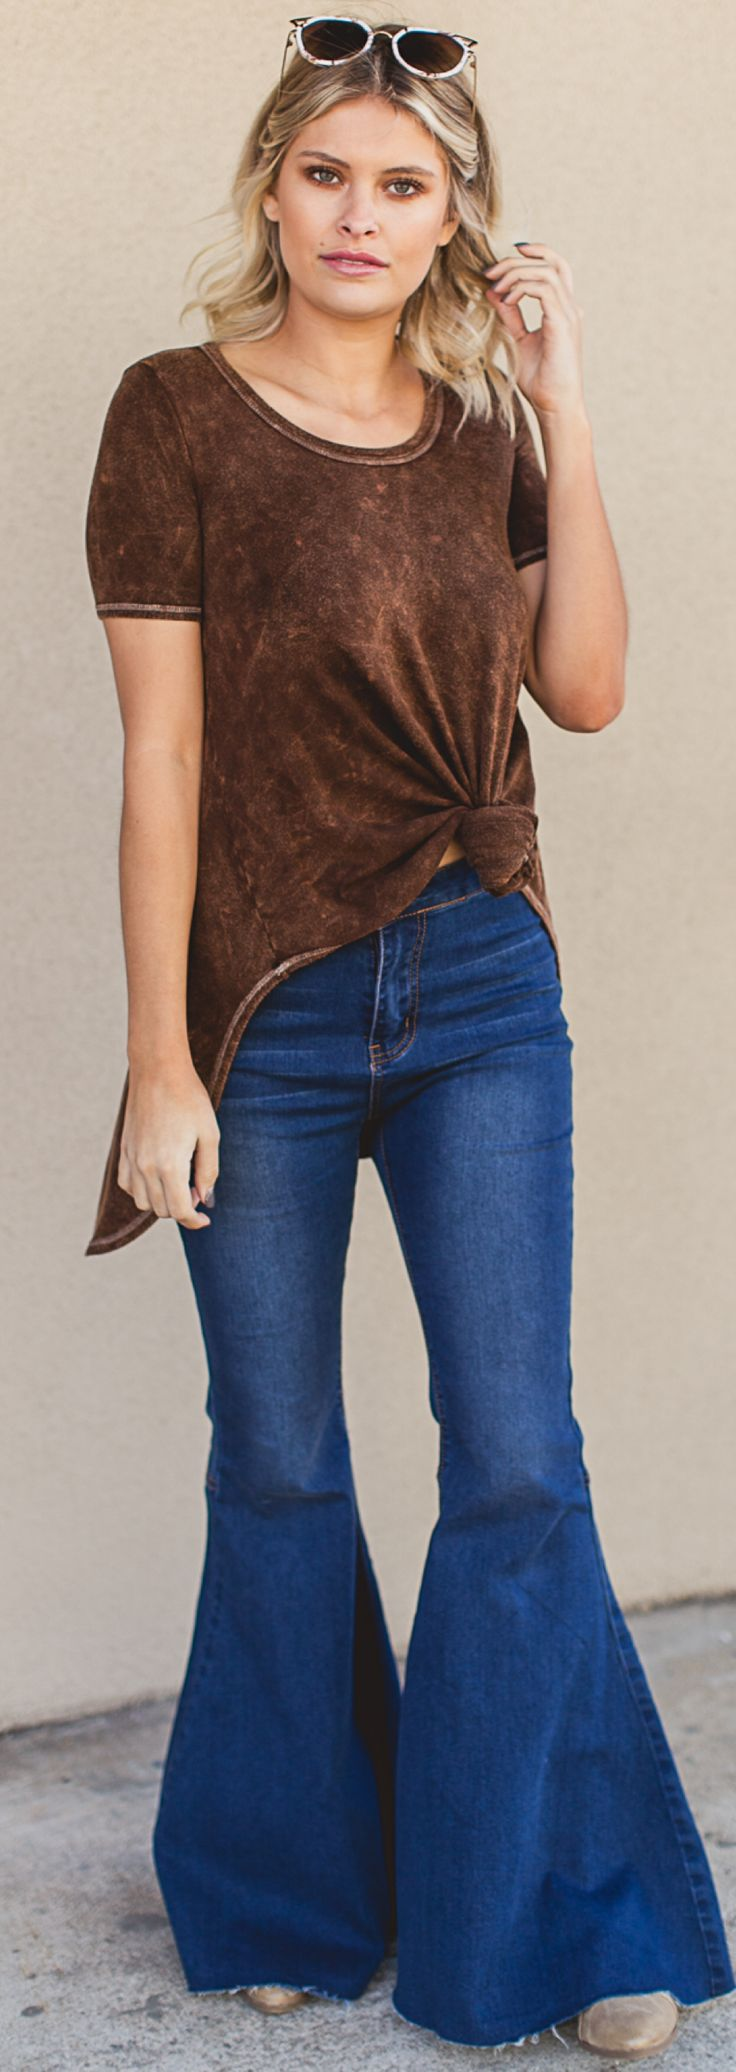 Trend alert: bell bottoms + acid wash! We are LOVING this 70s throwback outfit! #fashion #style #outfits